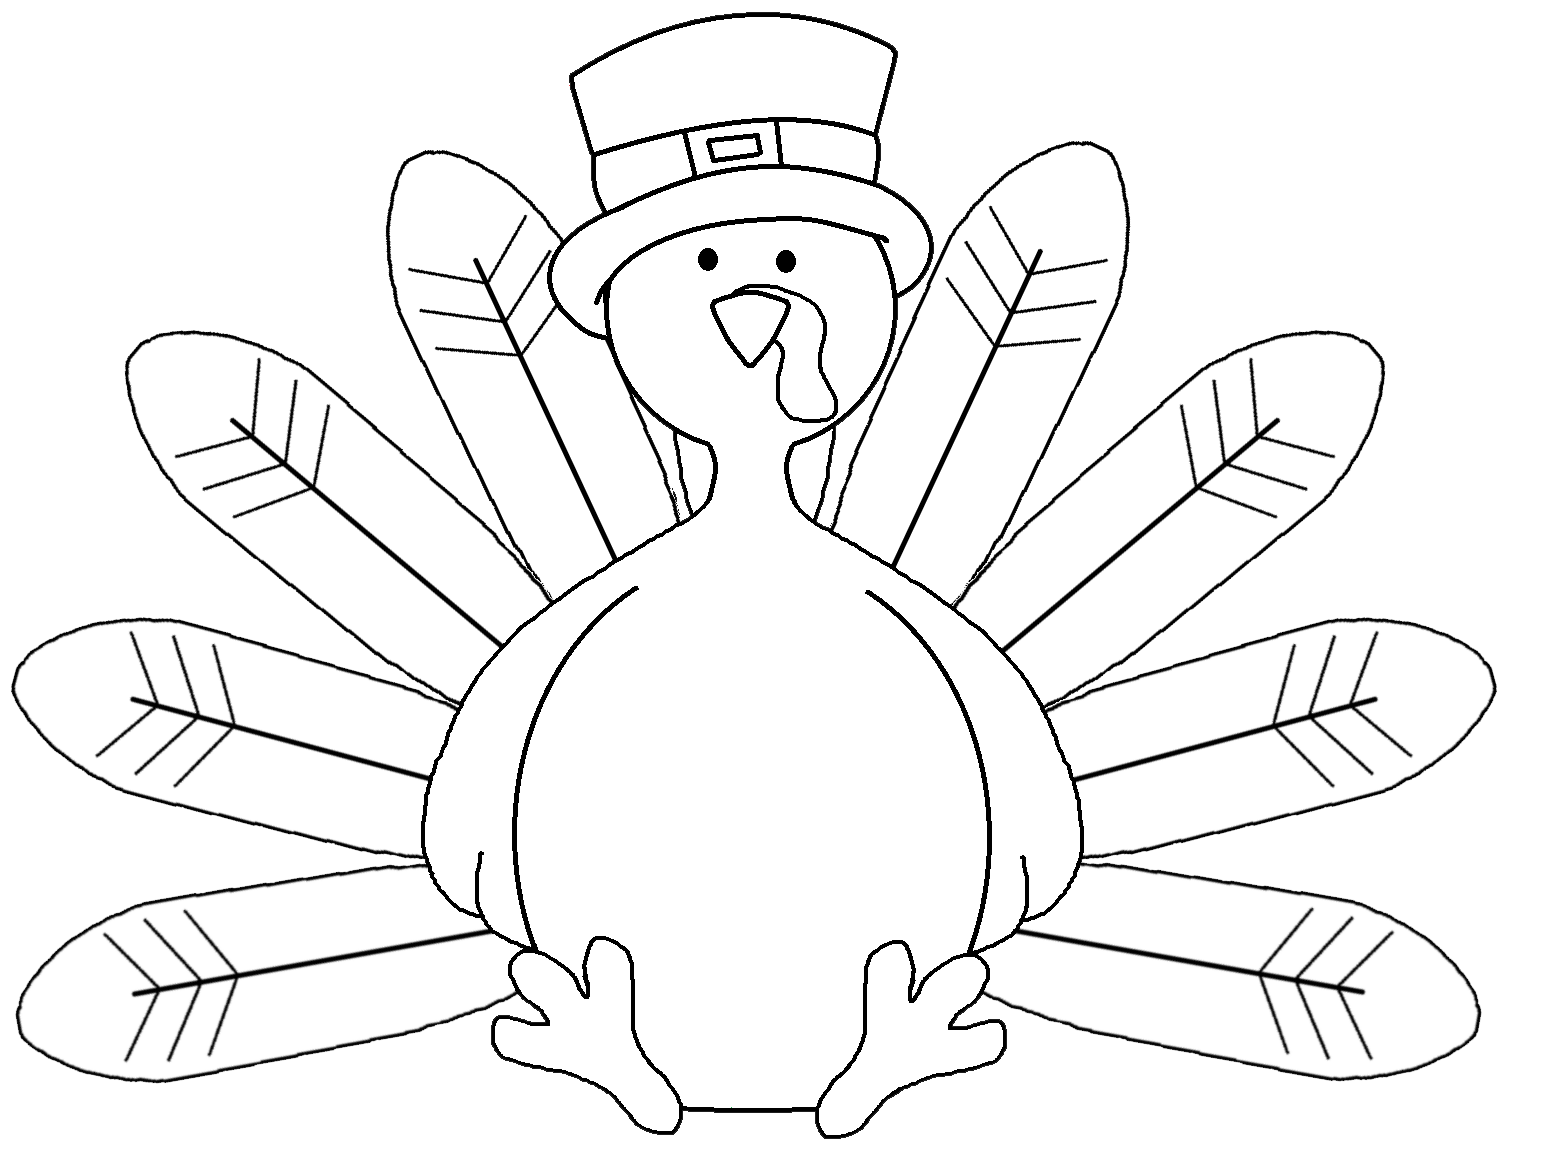 Black n white thanksgiving clipart svg stock 28+ Collection of Large Thanksgiving Turkey Clipart | High quality ... svg stock